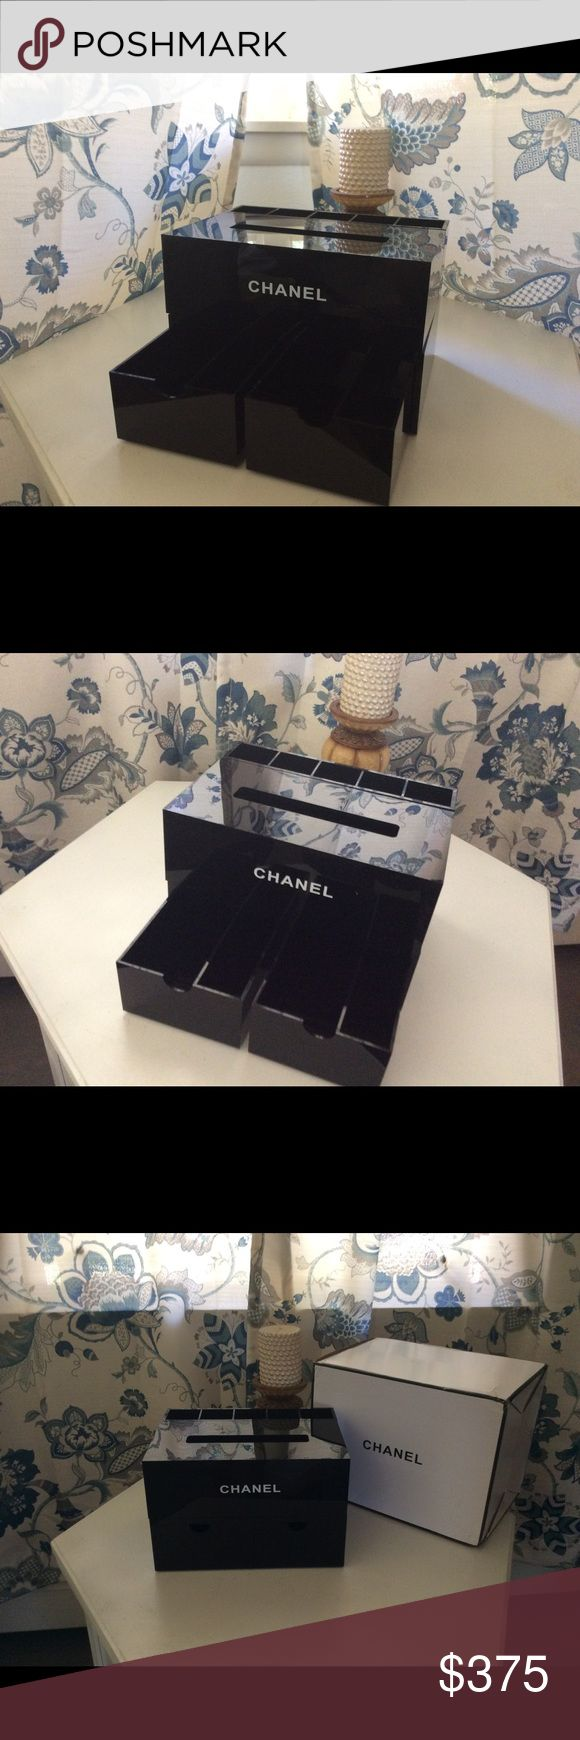 """Chanel VIP Makeup Tissue Storage Organizer Brand new, never used. Chanel VIP storage organizer. Store tissue box, make up brushes, lipsticks, nail polish or whatever needs organized. 100% authentic. Material is acrylic.  Measures 10"""" x 7"""" x 6.5"""". Other #makeups  #makeupsfemale #makeupswomen #makeupscanada #canada"""